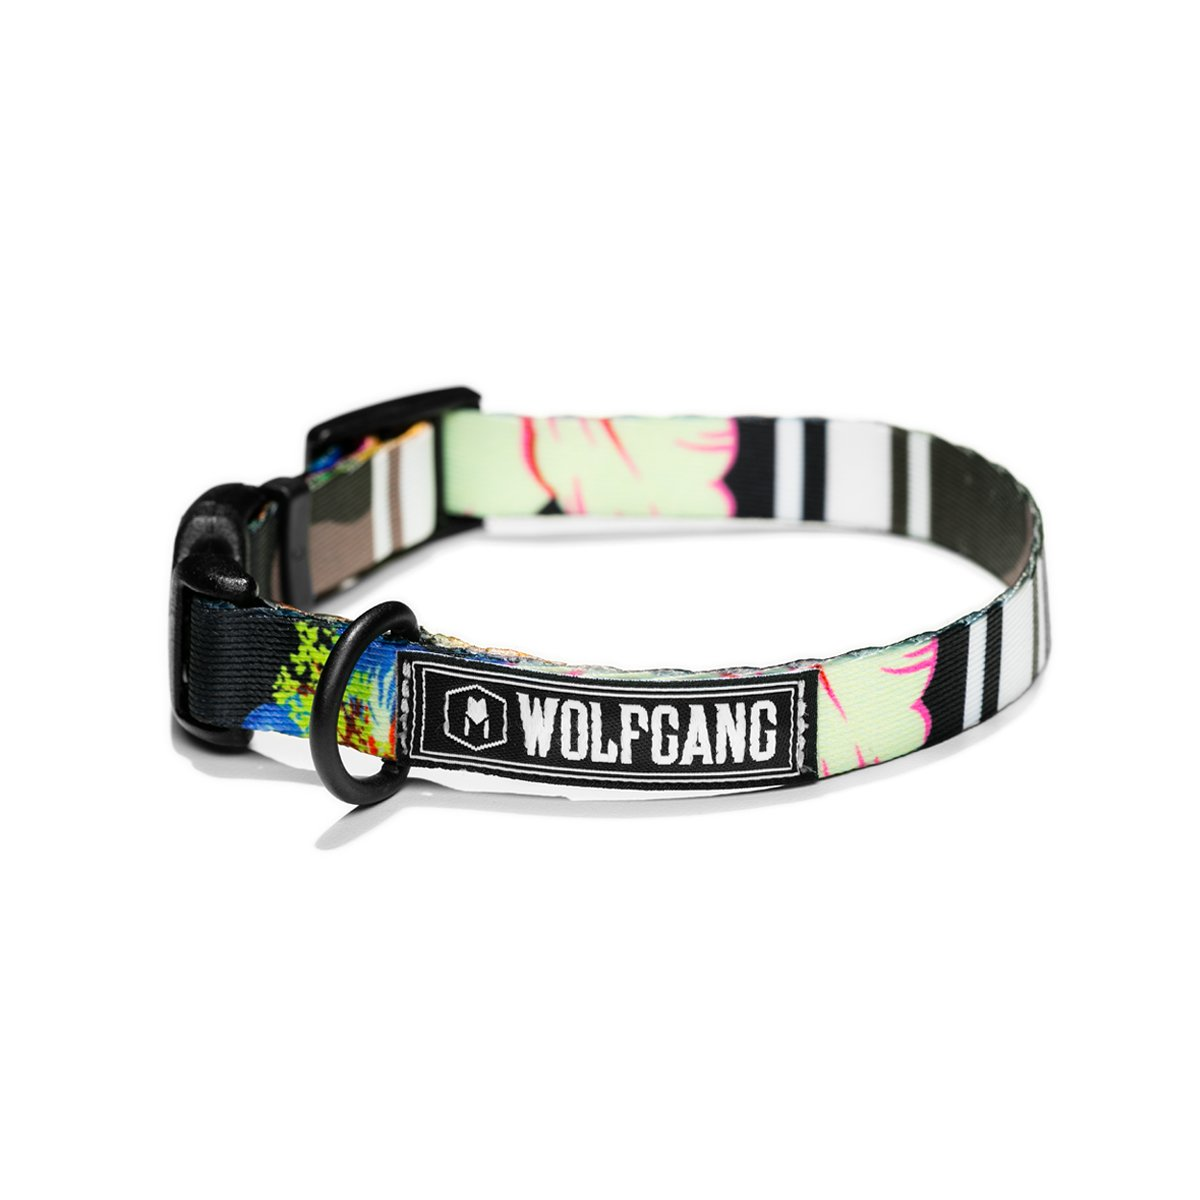 wolfgang-collar-street-logic-5-8-wide